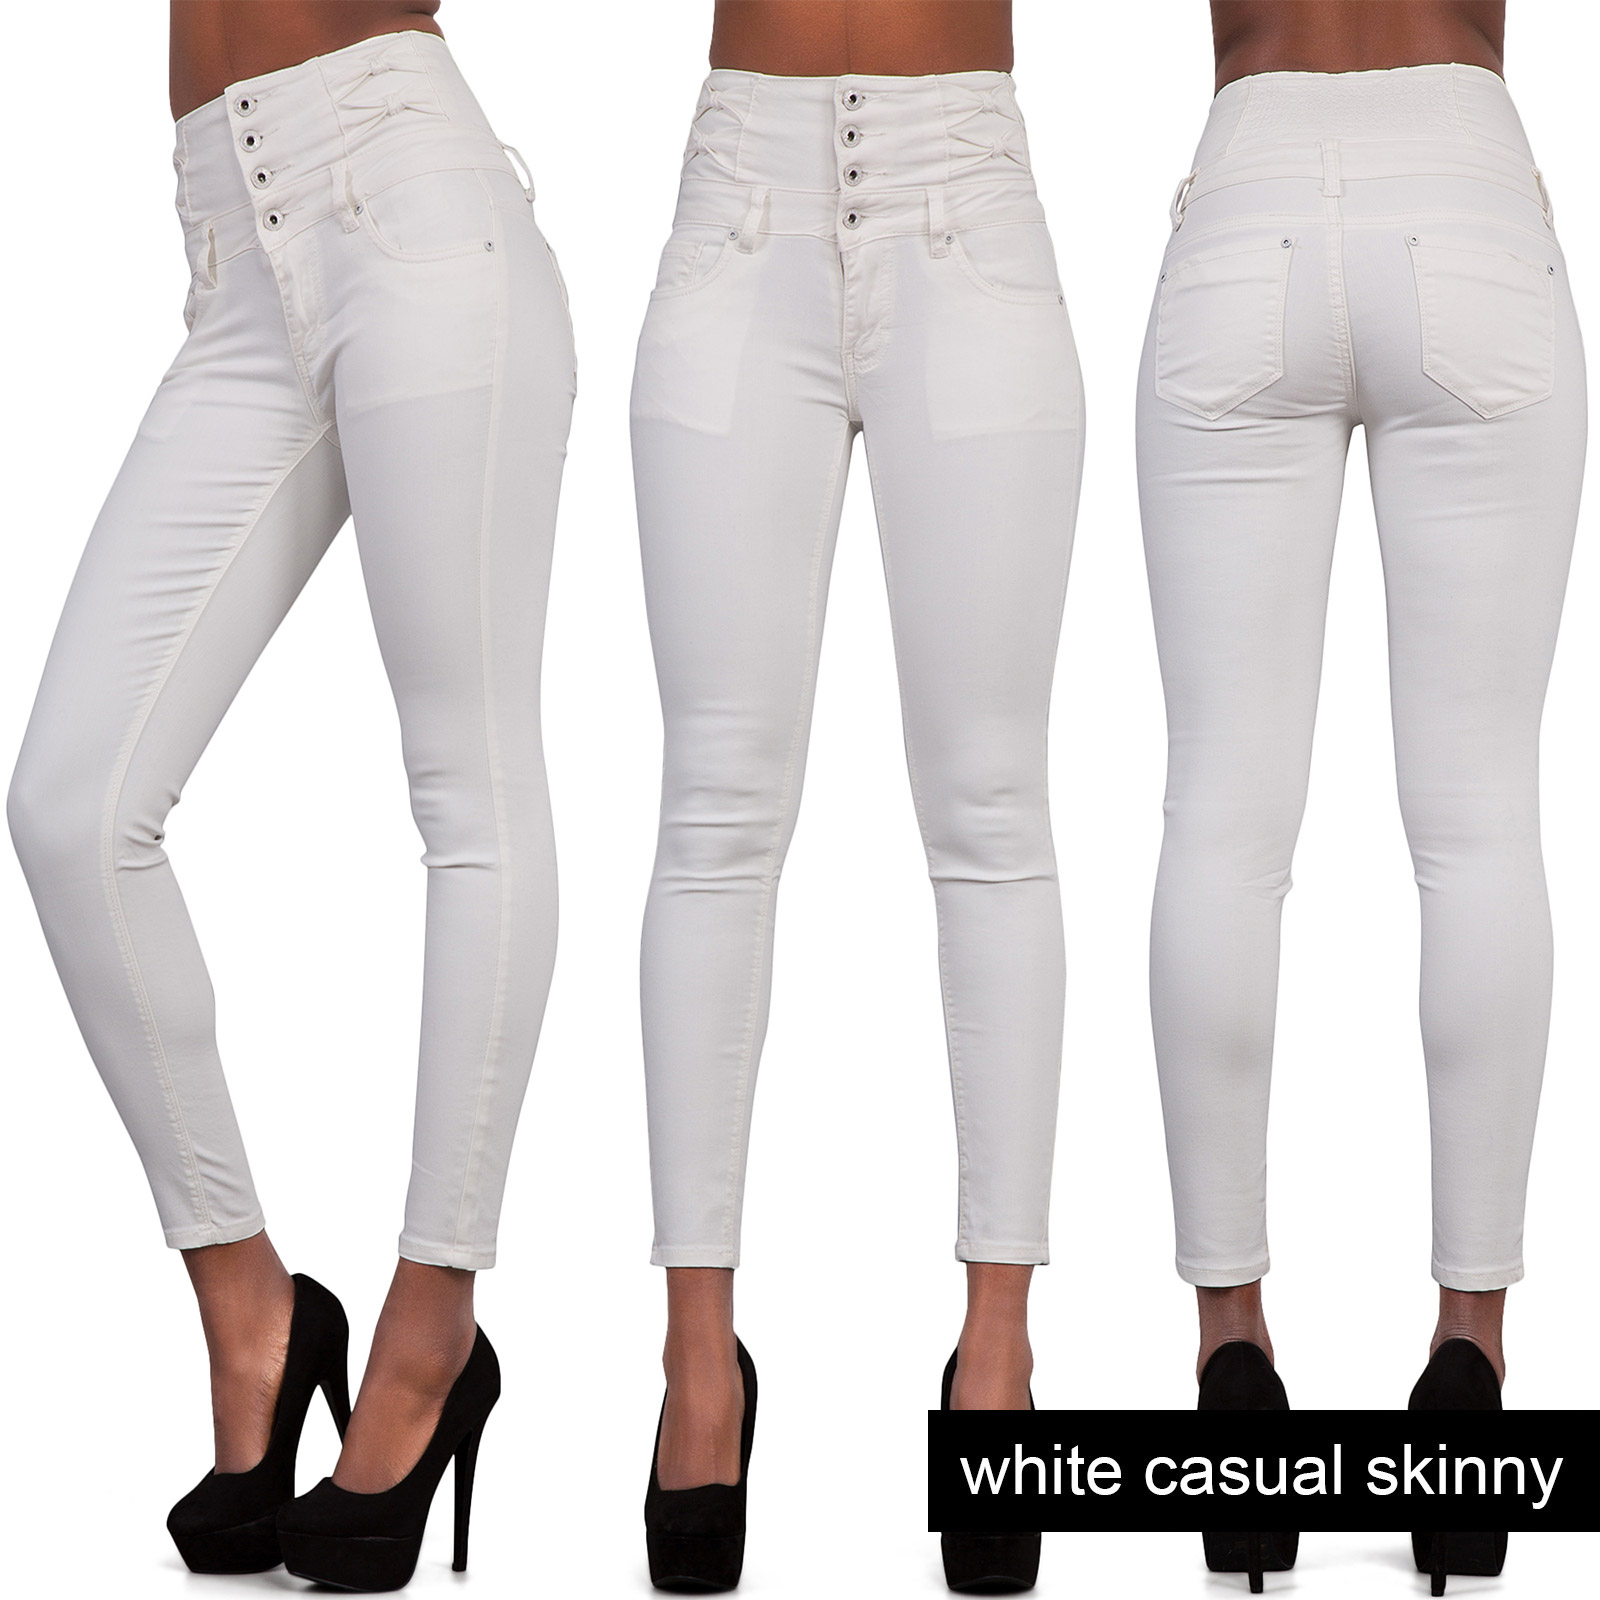 Discover high waisted and super high waisted jeans at ASOS. Shop from a range of skinny, ankle, ripped and flared high waisted jean styles from ASOS. Dr Denim Solitaire super high waist leather look super skinny jean. $ Diesel babhila highwaisted skinny jean. $